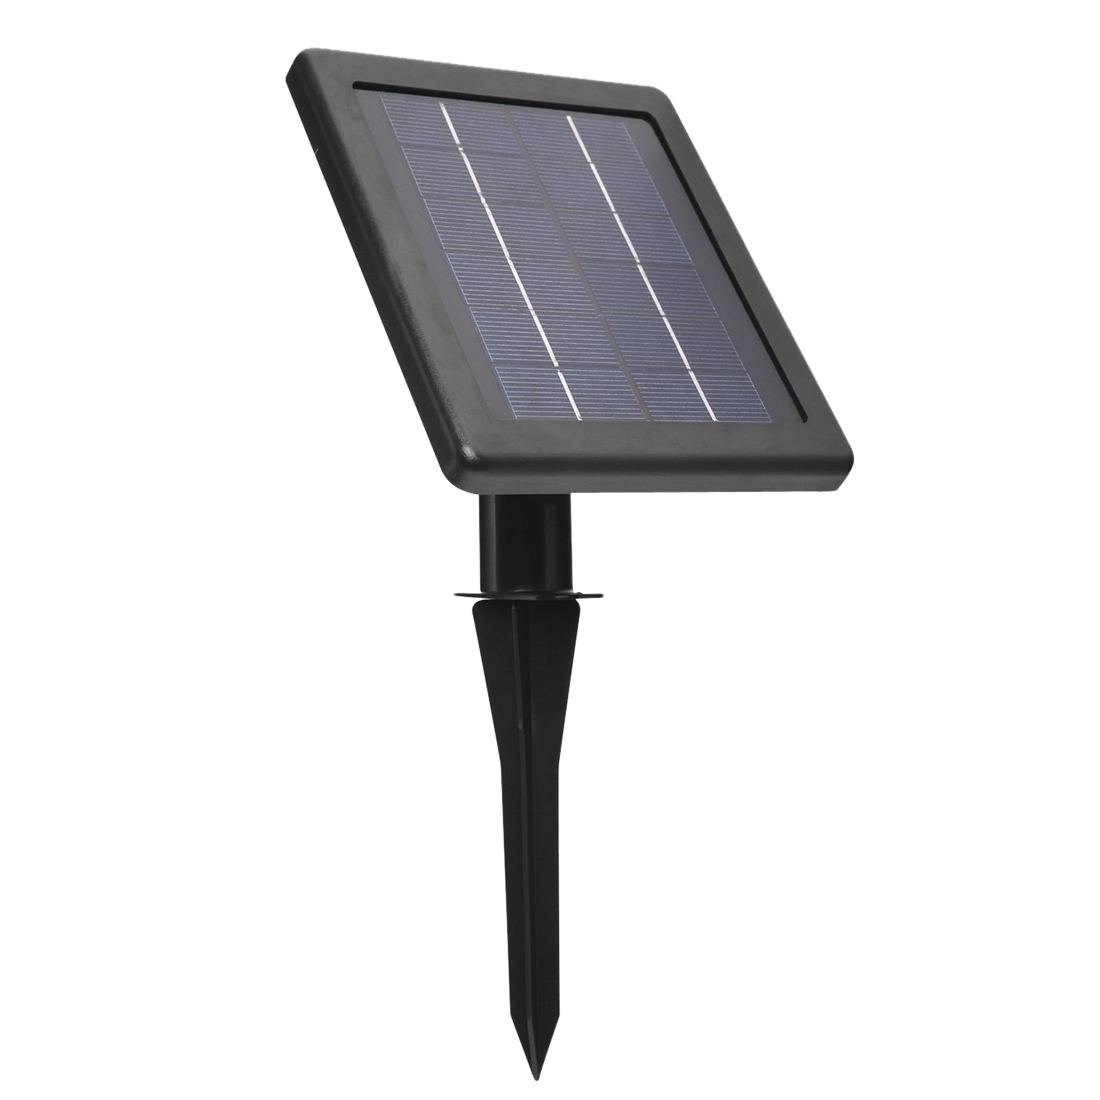 Rechargeable Waterproof Solar Powered 30 LED Spot Light White Lamp with Lithium Battery Inside for Lawn, Garden, Road, Hotel solar powered self recharged led white light lawn lamp 1 aa